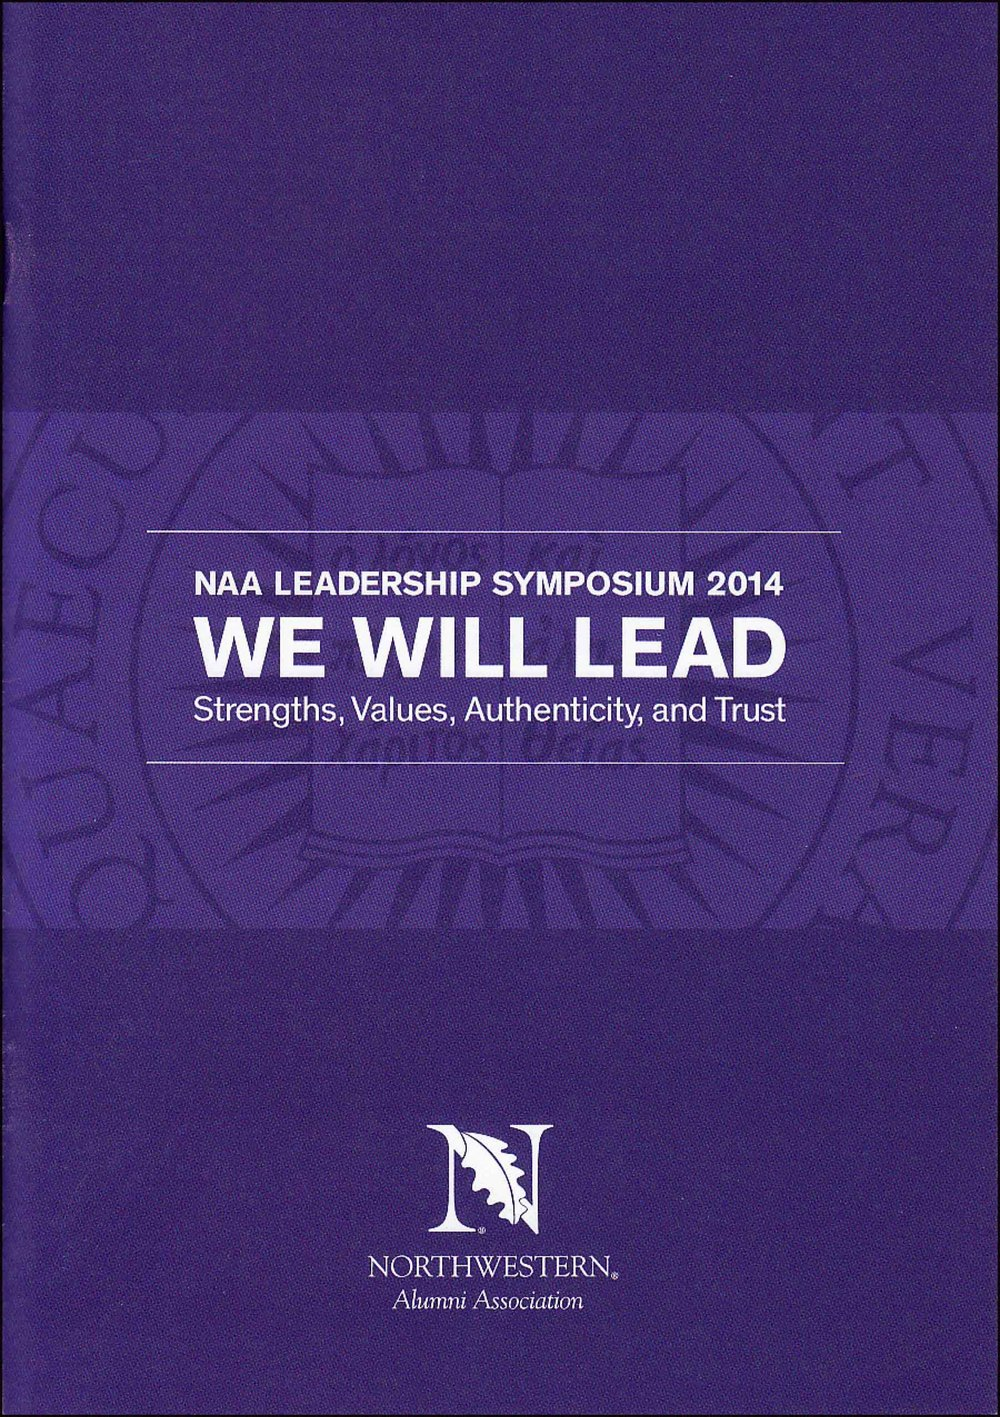 NU_leadership_symposium_14-1.jpg